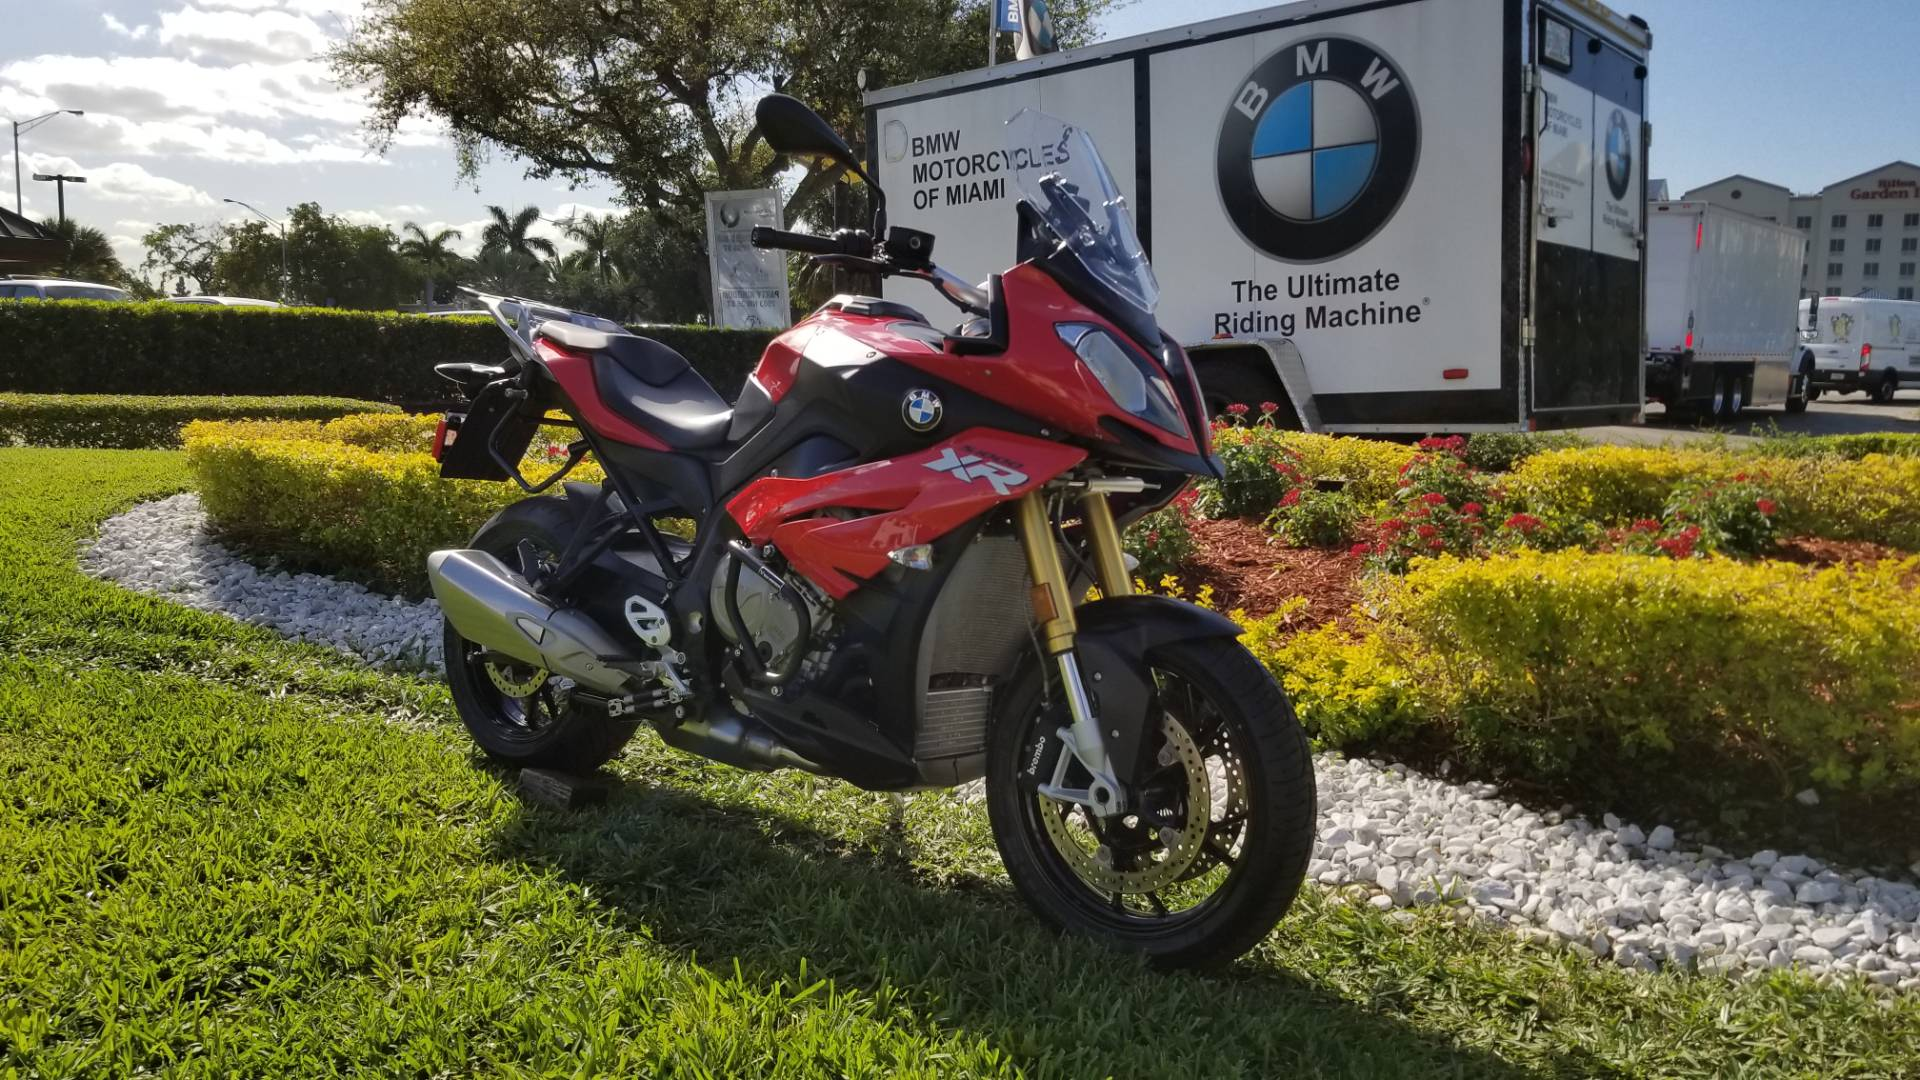 Used 2016 BMW S 1000 XR For Sale, Pre Owned BMW S 1000XR For Sale, Pre-Owned BMW Motorcycle S1000XR, BMW Motorcycle, S 1000 XR, DUAL, BMW - Photo 13